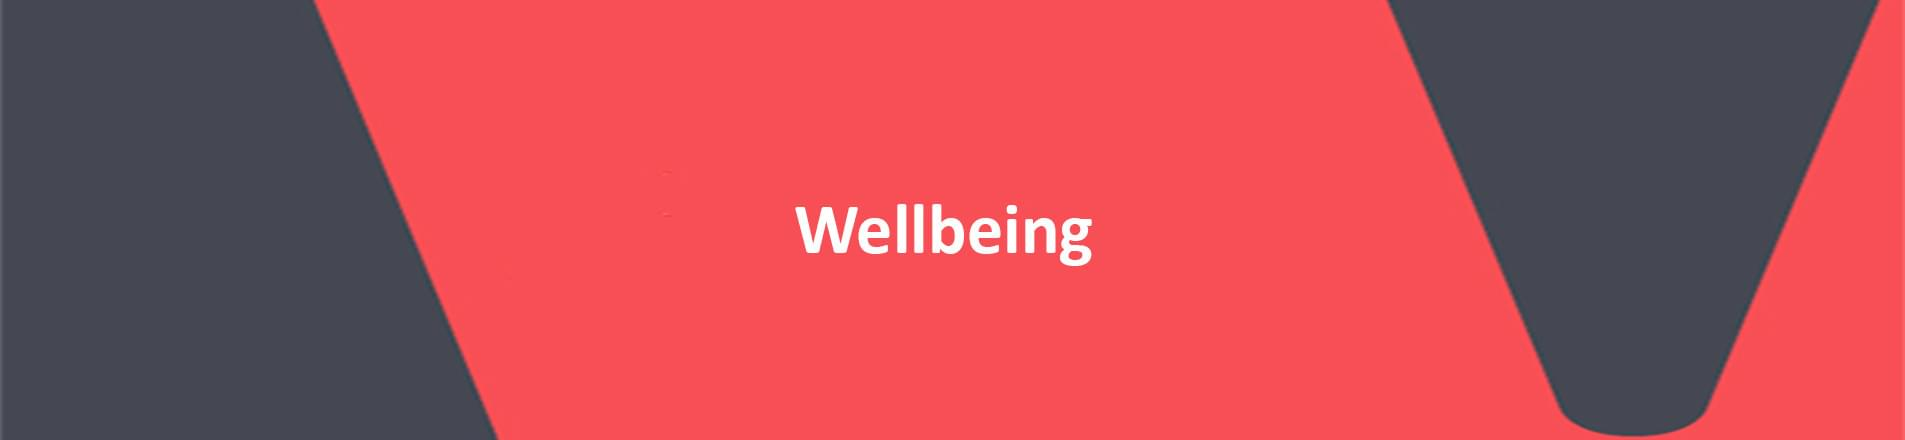 Image of the word wellbeing on a red background